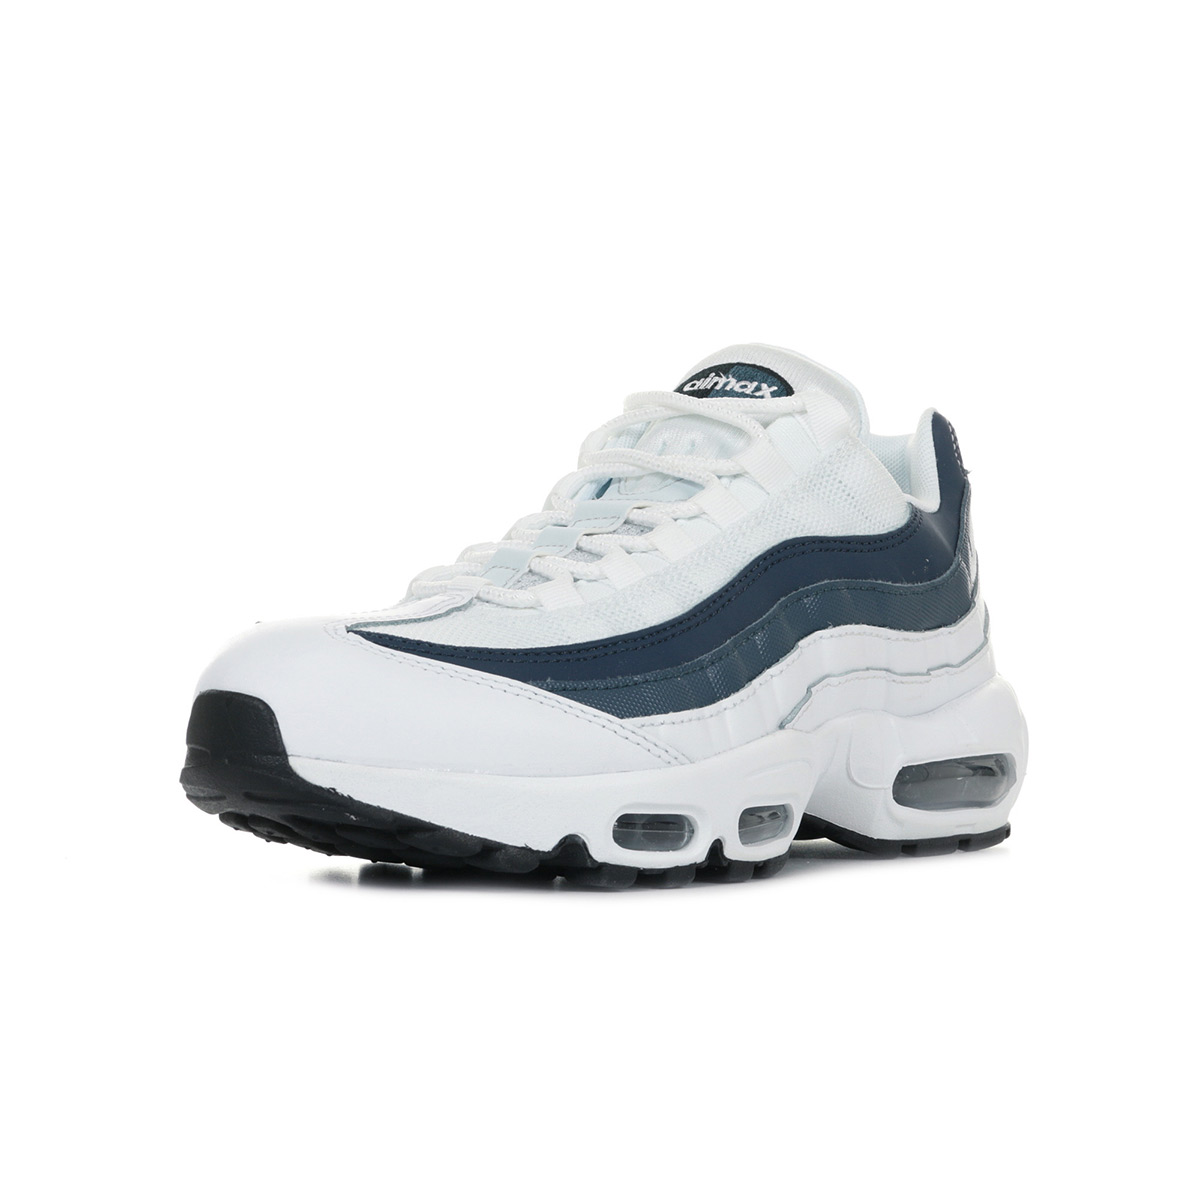 770385385205 Nike Air Max 95 Essential 749766114, Baskets mode homme